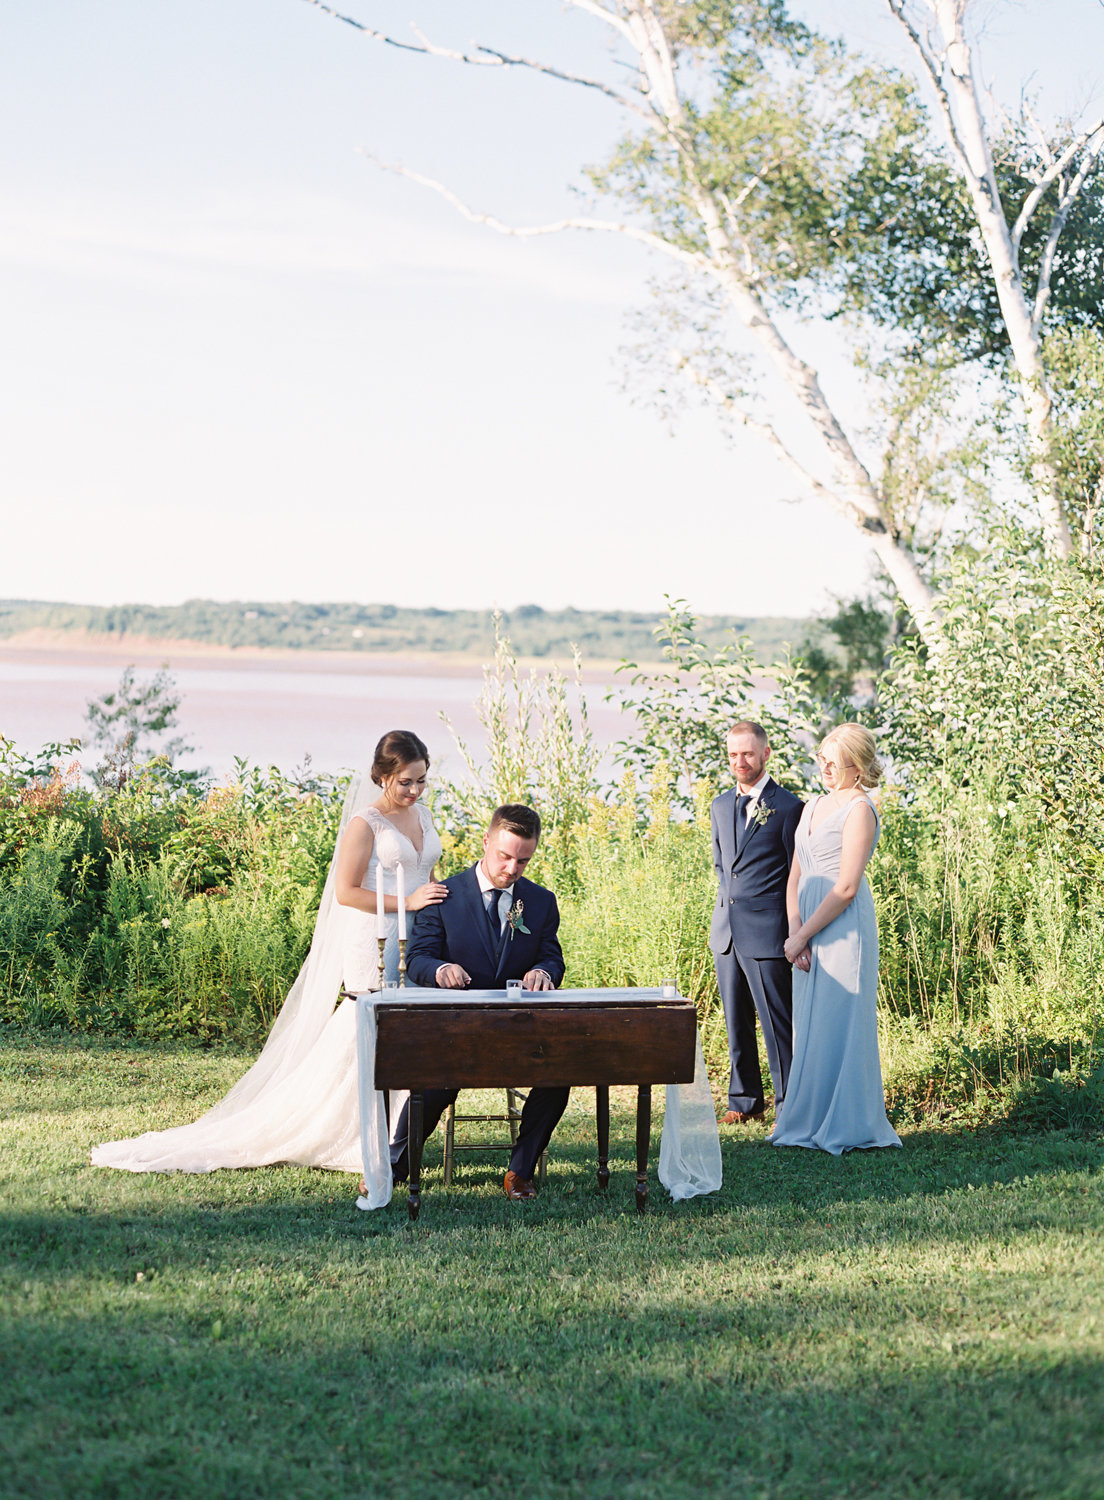 Jacqueline Anne Photography - Nova Scotia Backyard Wedding-71